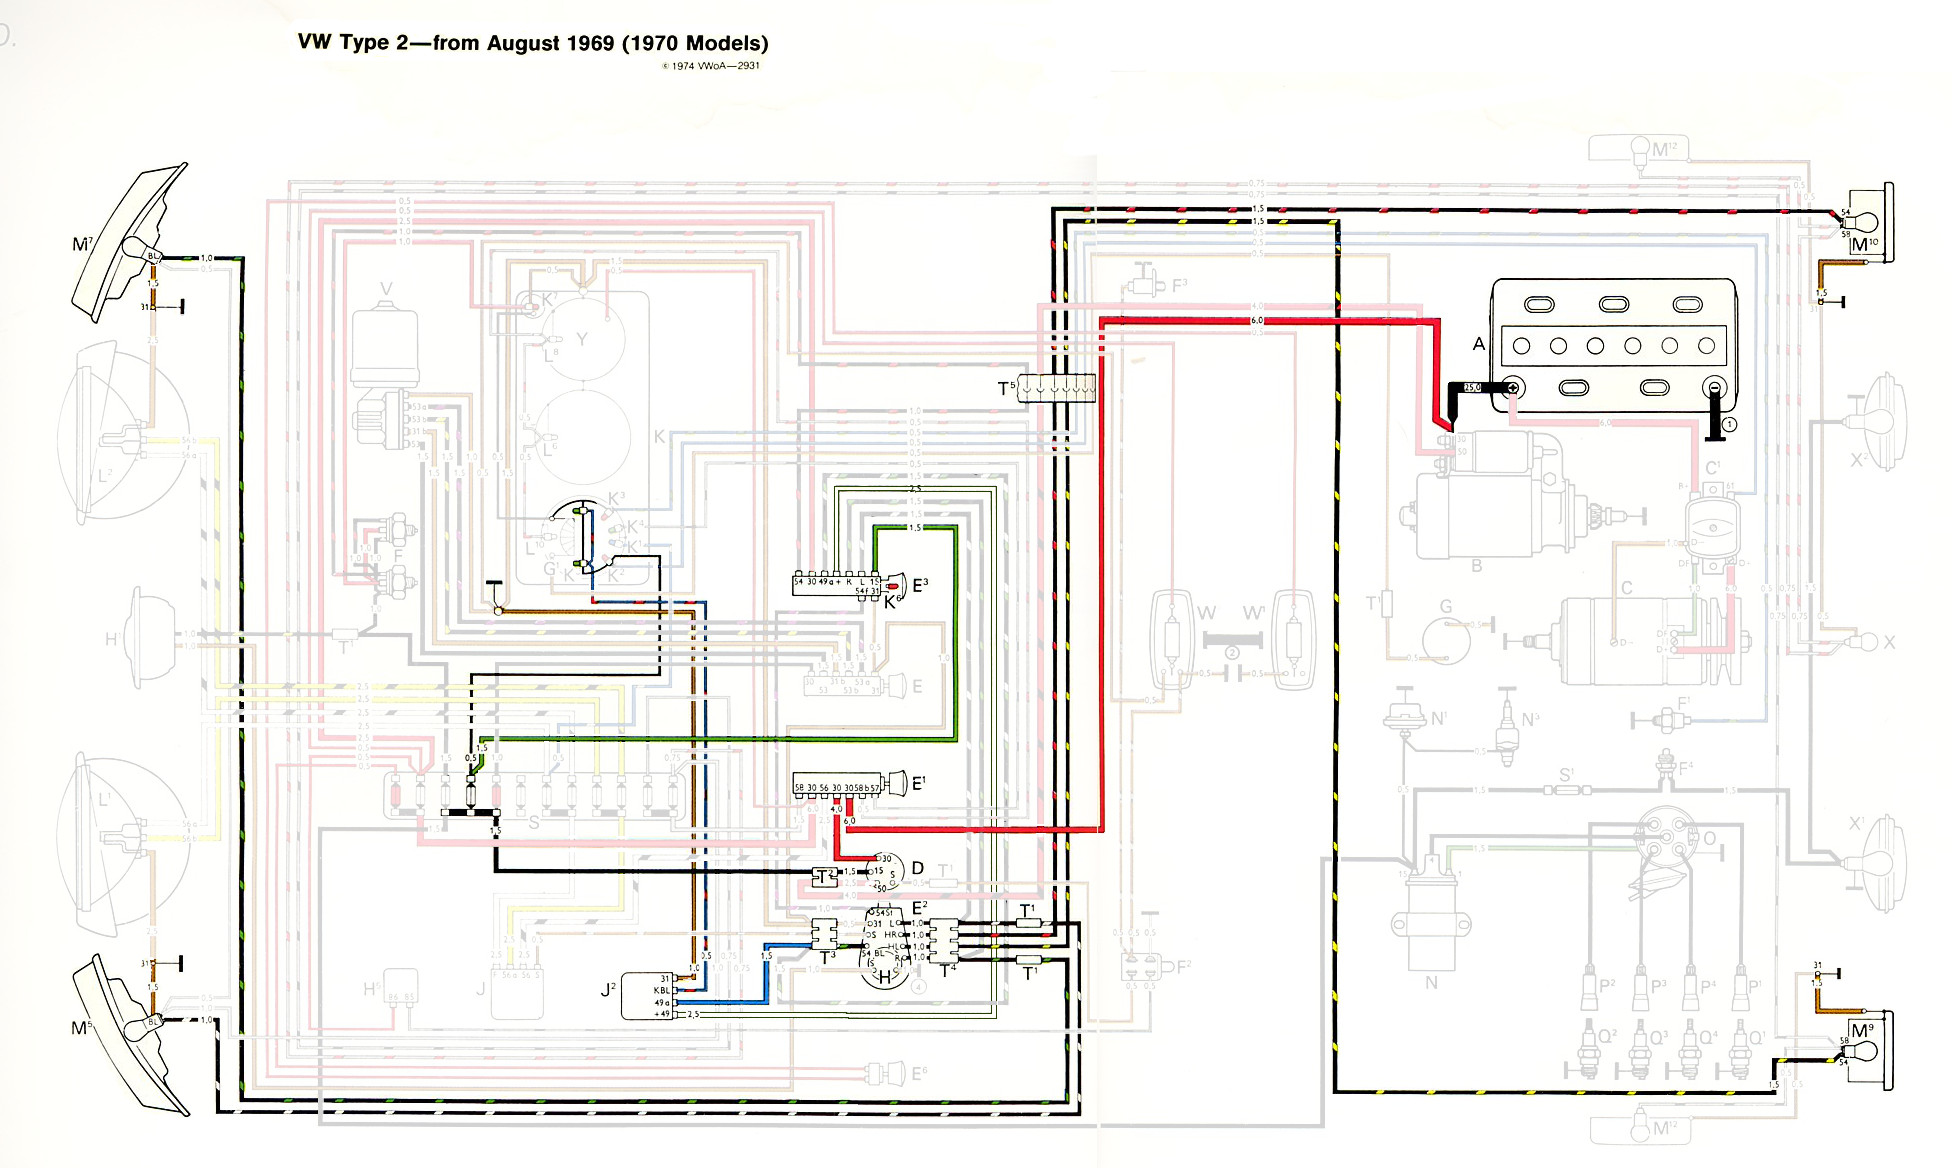 Vw Van Turn Signal Wiring Diagram Start Building A Aftermarket Switch Thesamba Com Type 2 Diagrams Rh Flasher